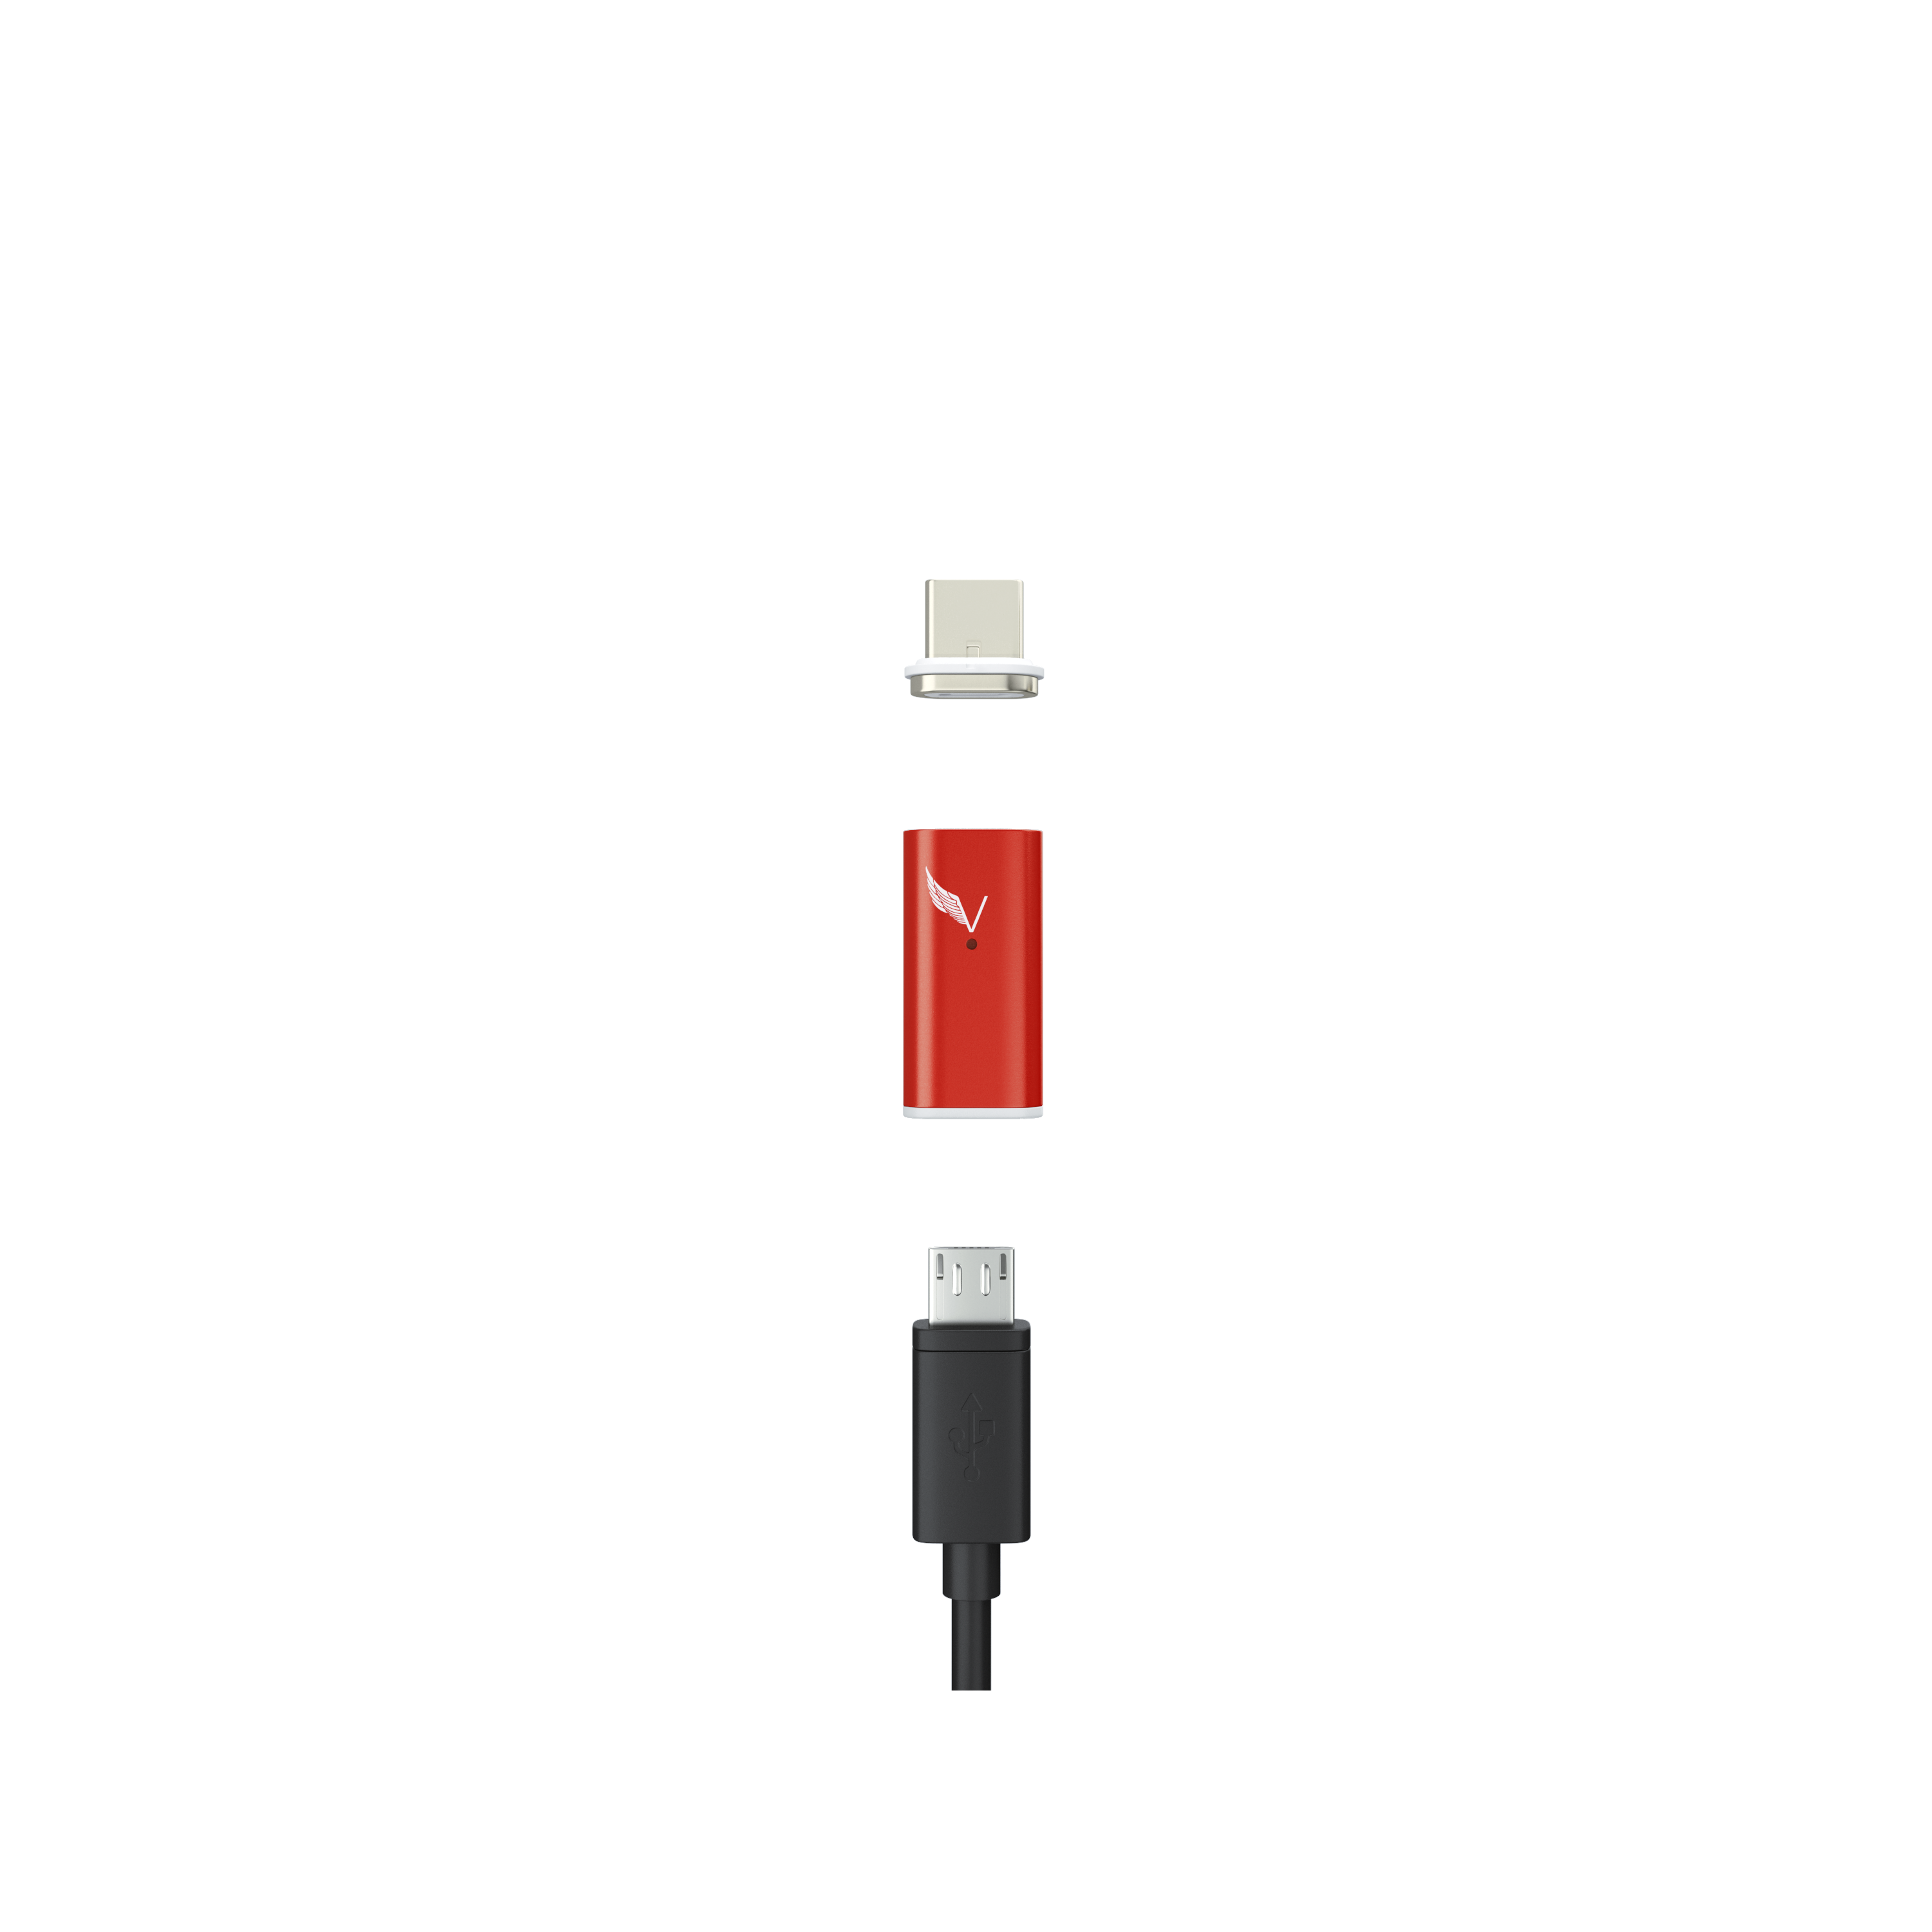 Volta XL fast charging USB-C cable brings MagSafe-like magnetic connector back to MacBook. Volta XL is a new fast charging USB-C cable that includes a built-in magnetic connector much like the MagSafe connector Apple removed from its MacBooks in the transition to USB-C for power